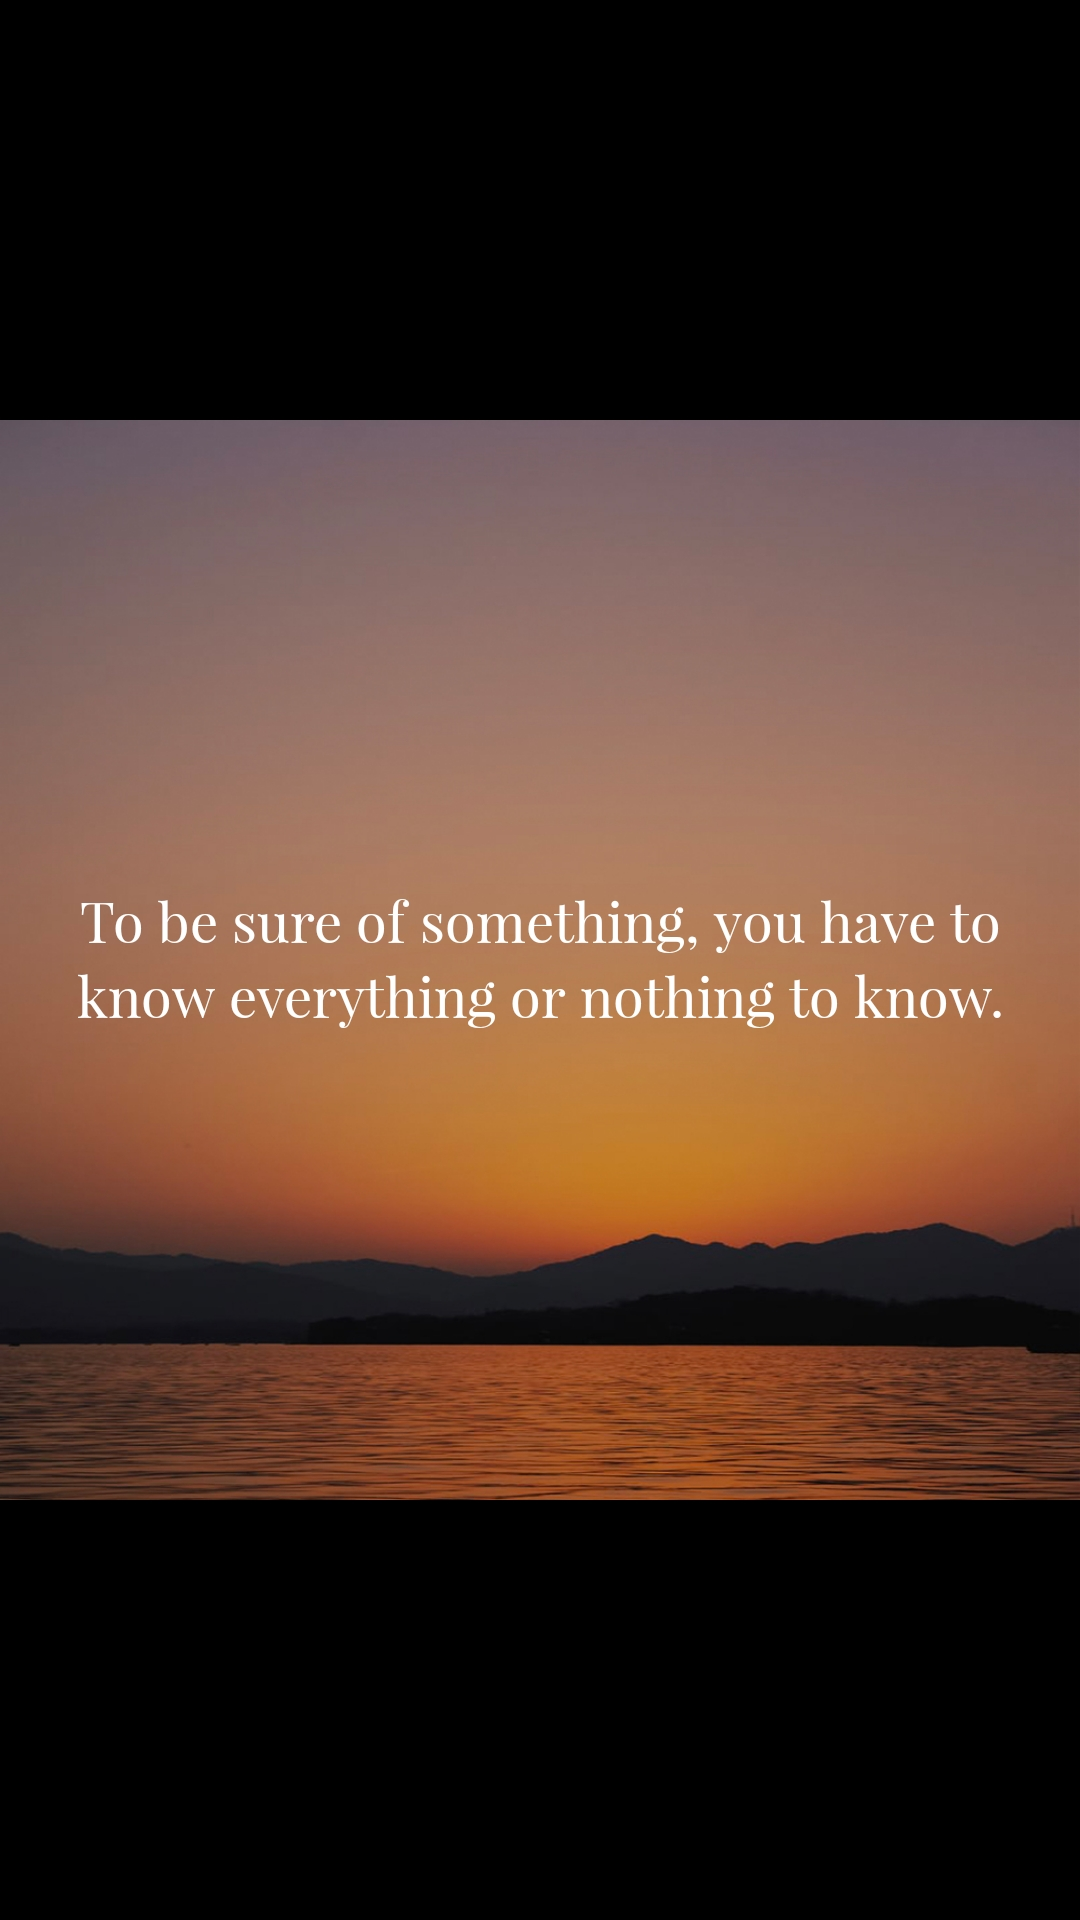 To be sure of something, you have to know everything or nothing to know.